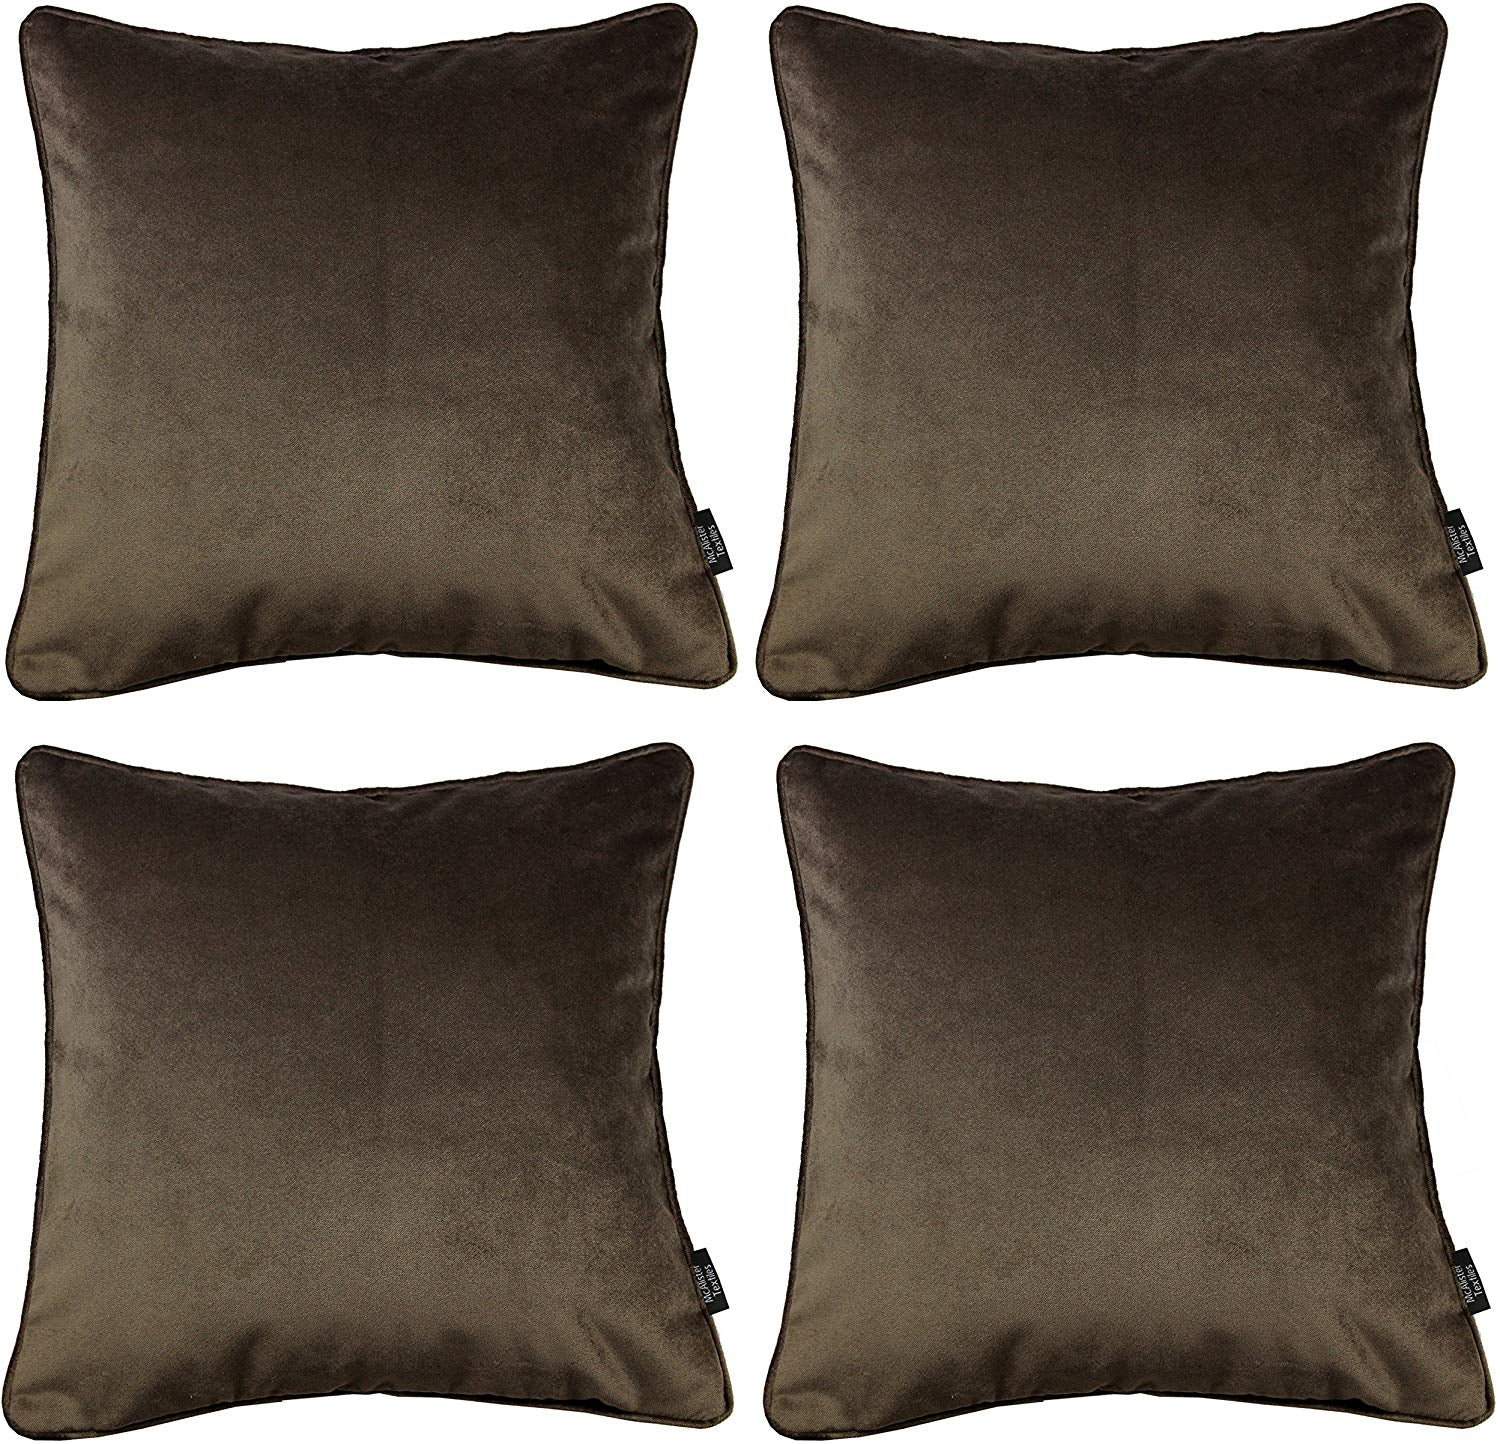 McAlister Textiles Matt Mocha Brown Velvet 43cm x 43cm Cushion Sets Cushions and Covers Cushion Covers Set of 4